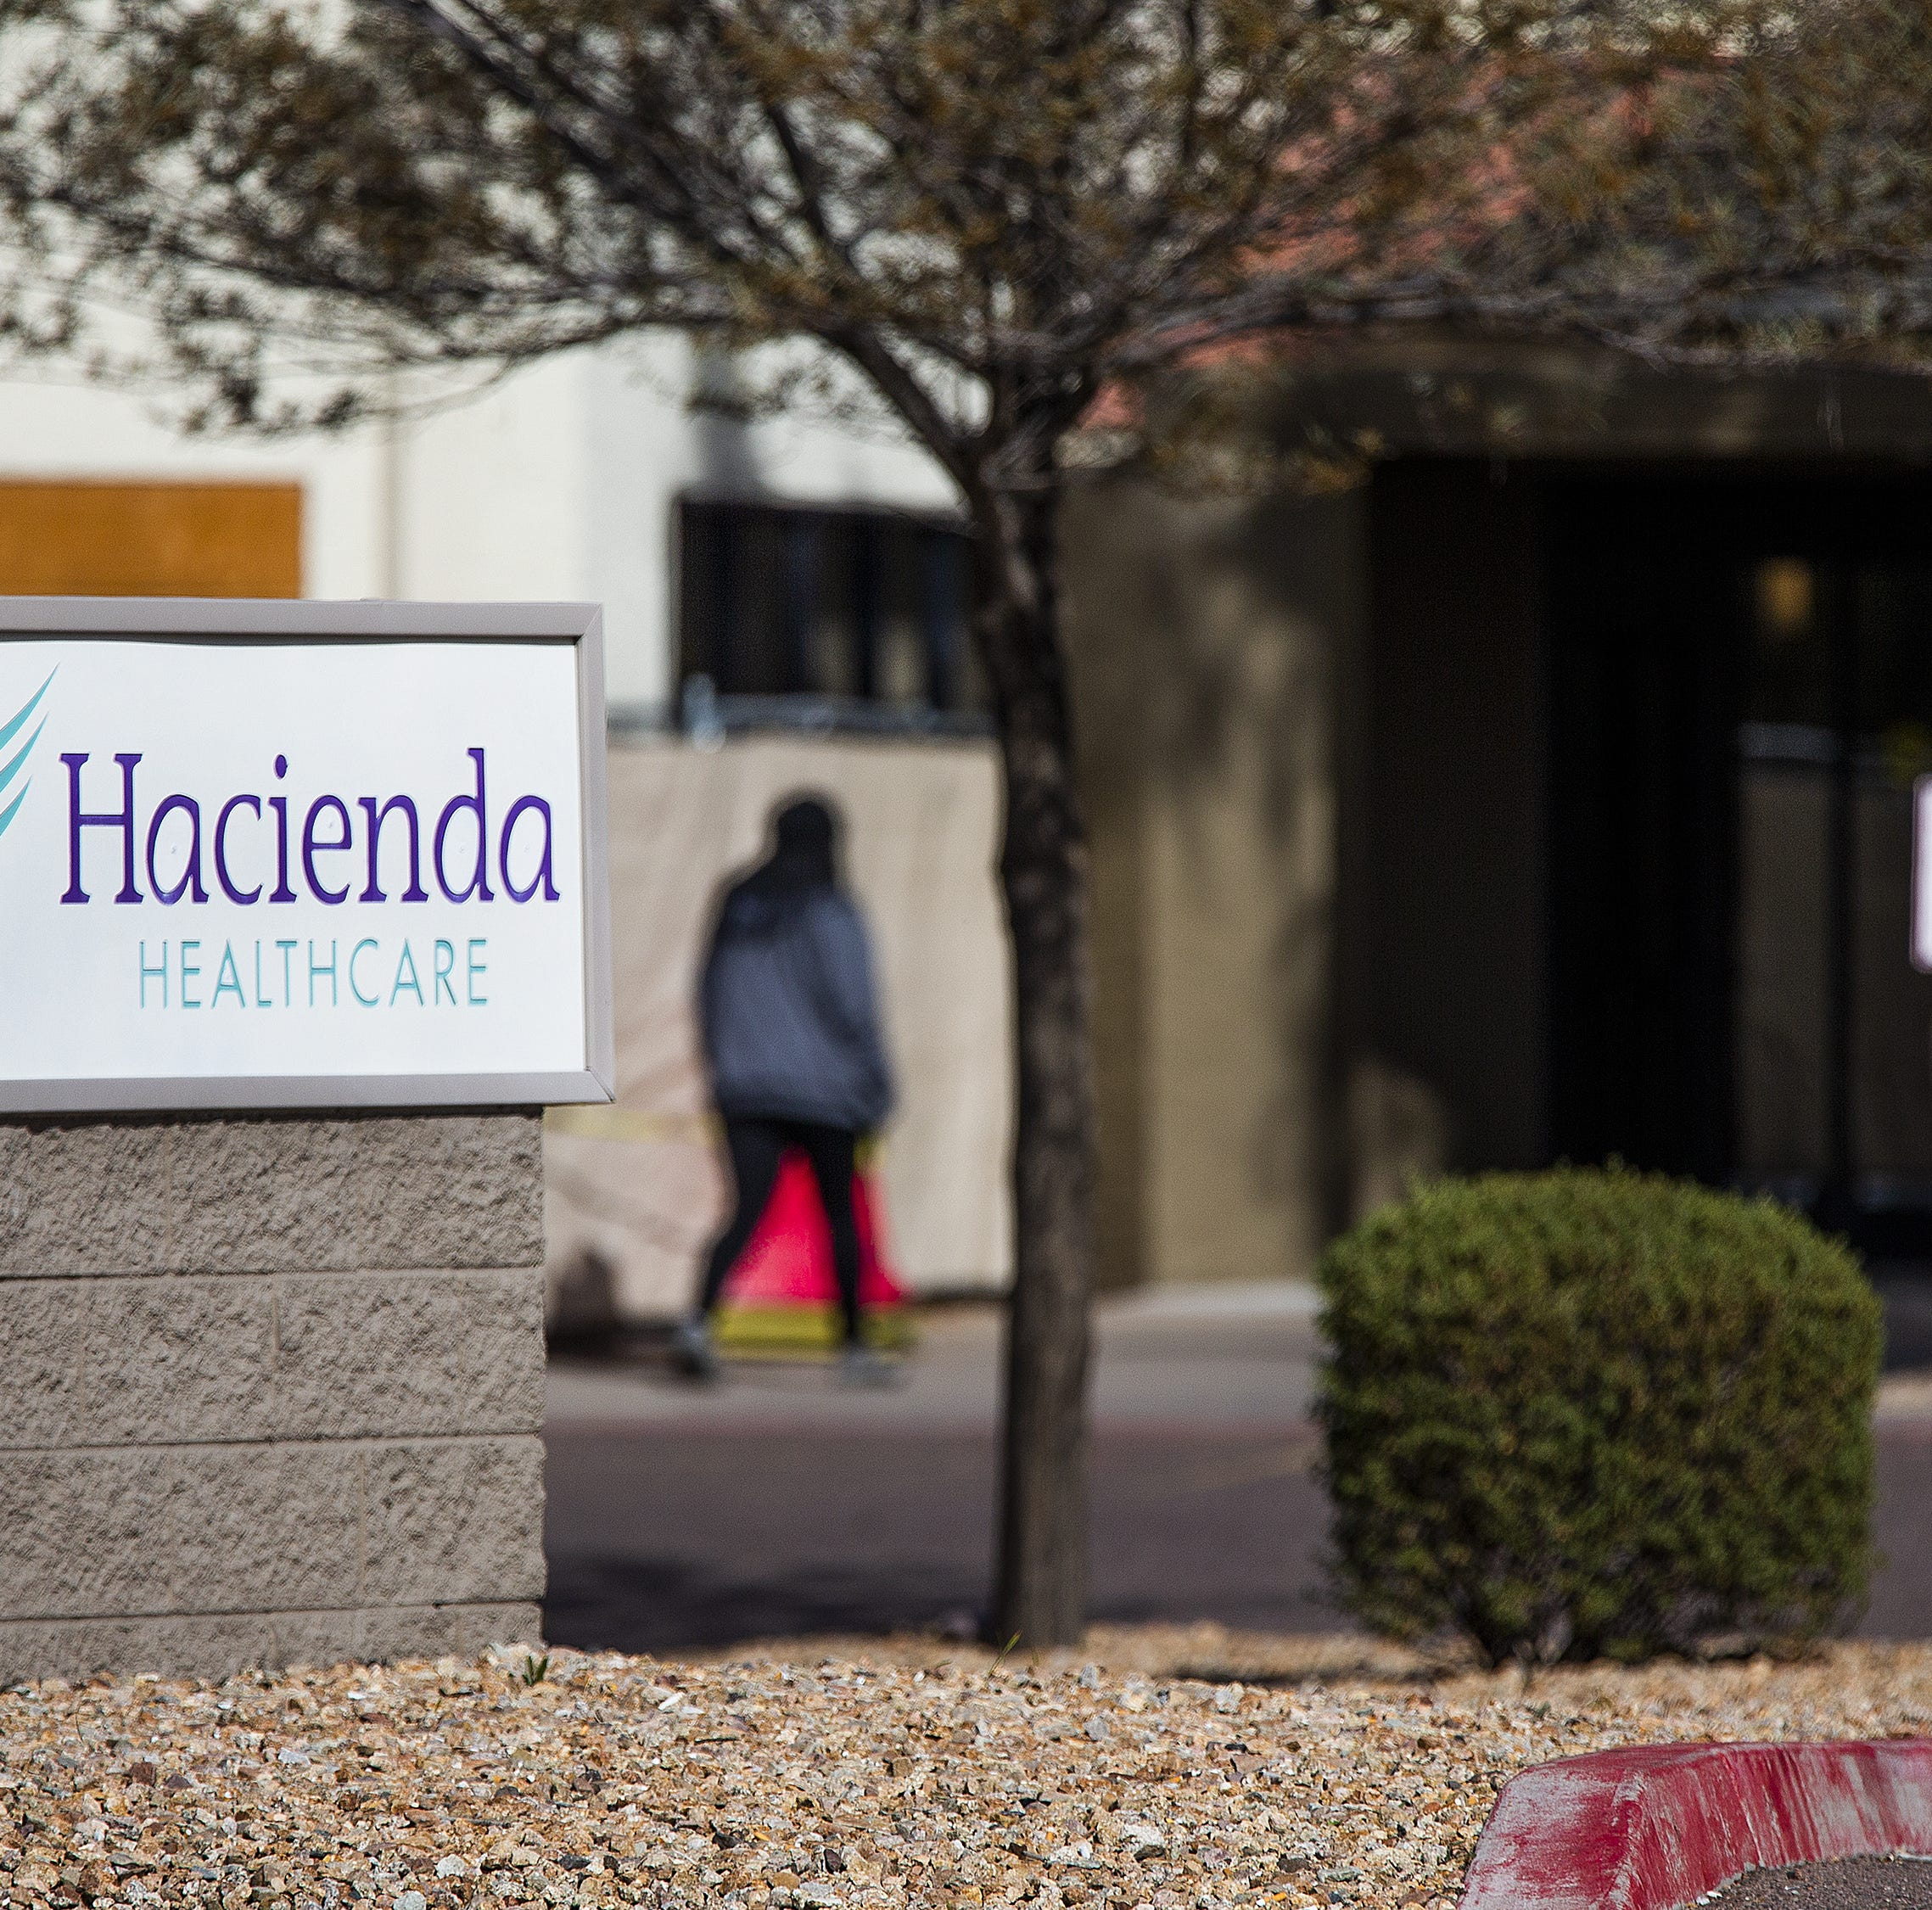 Community outrage at Hacienda rape could result in new laws, more oversight